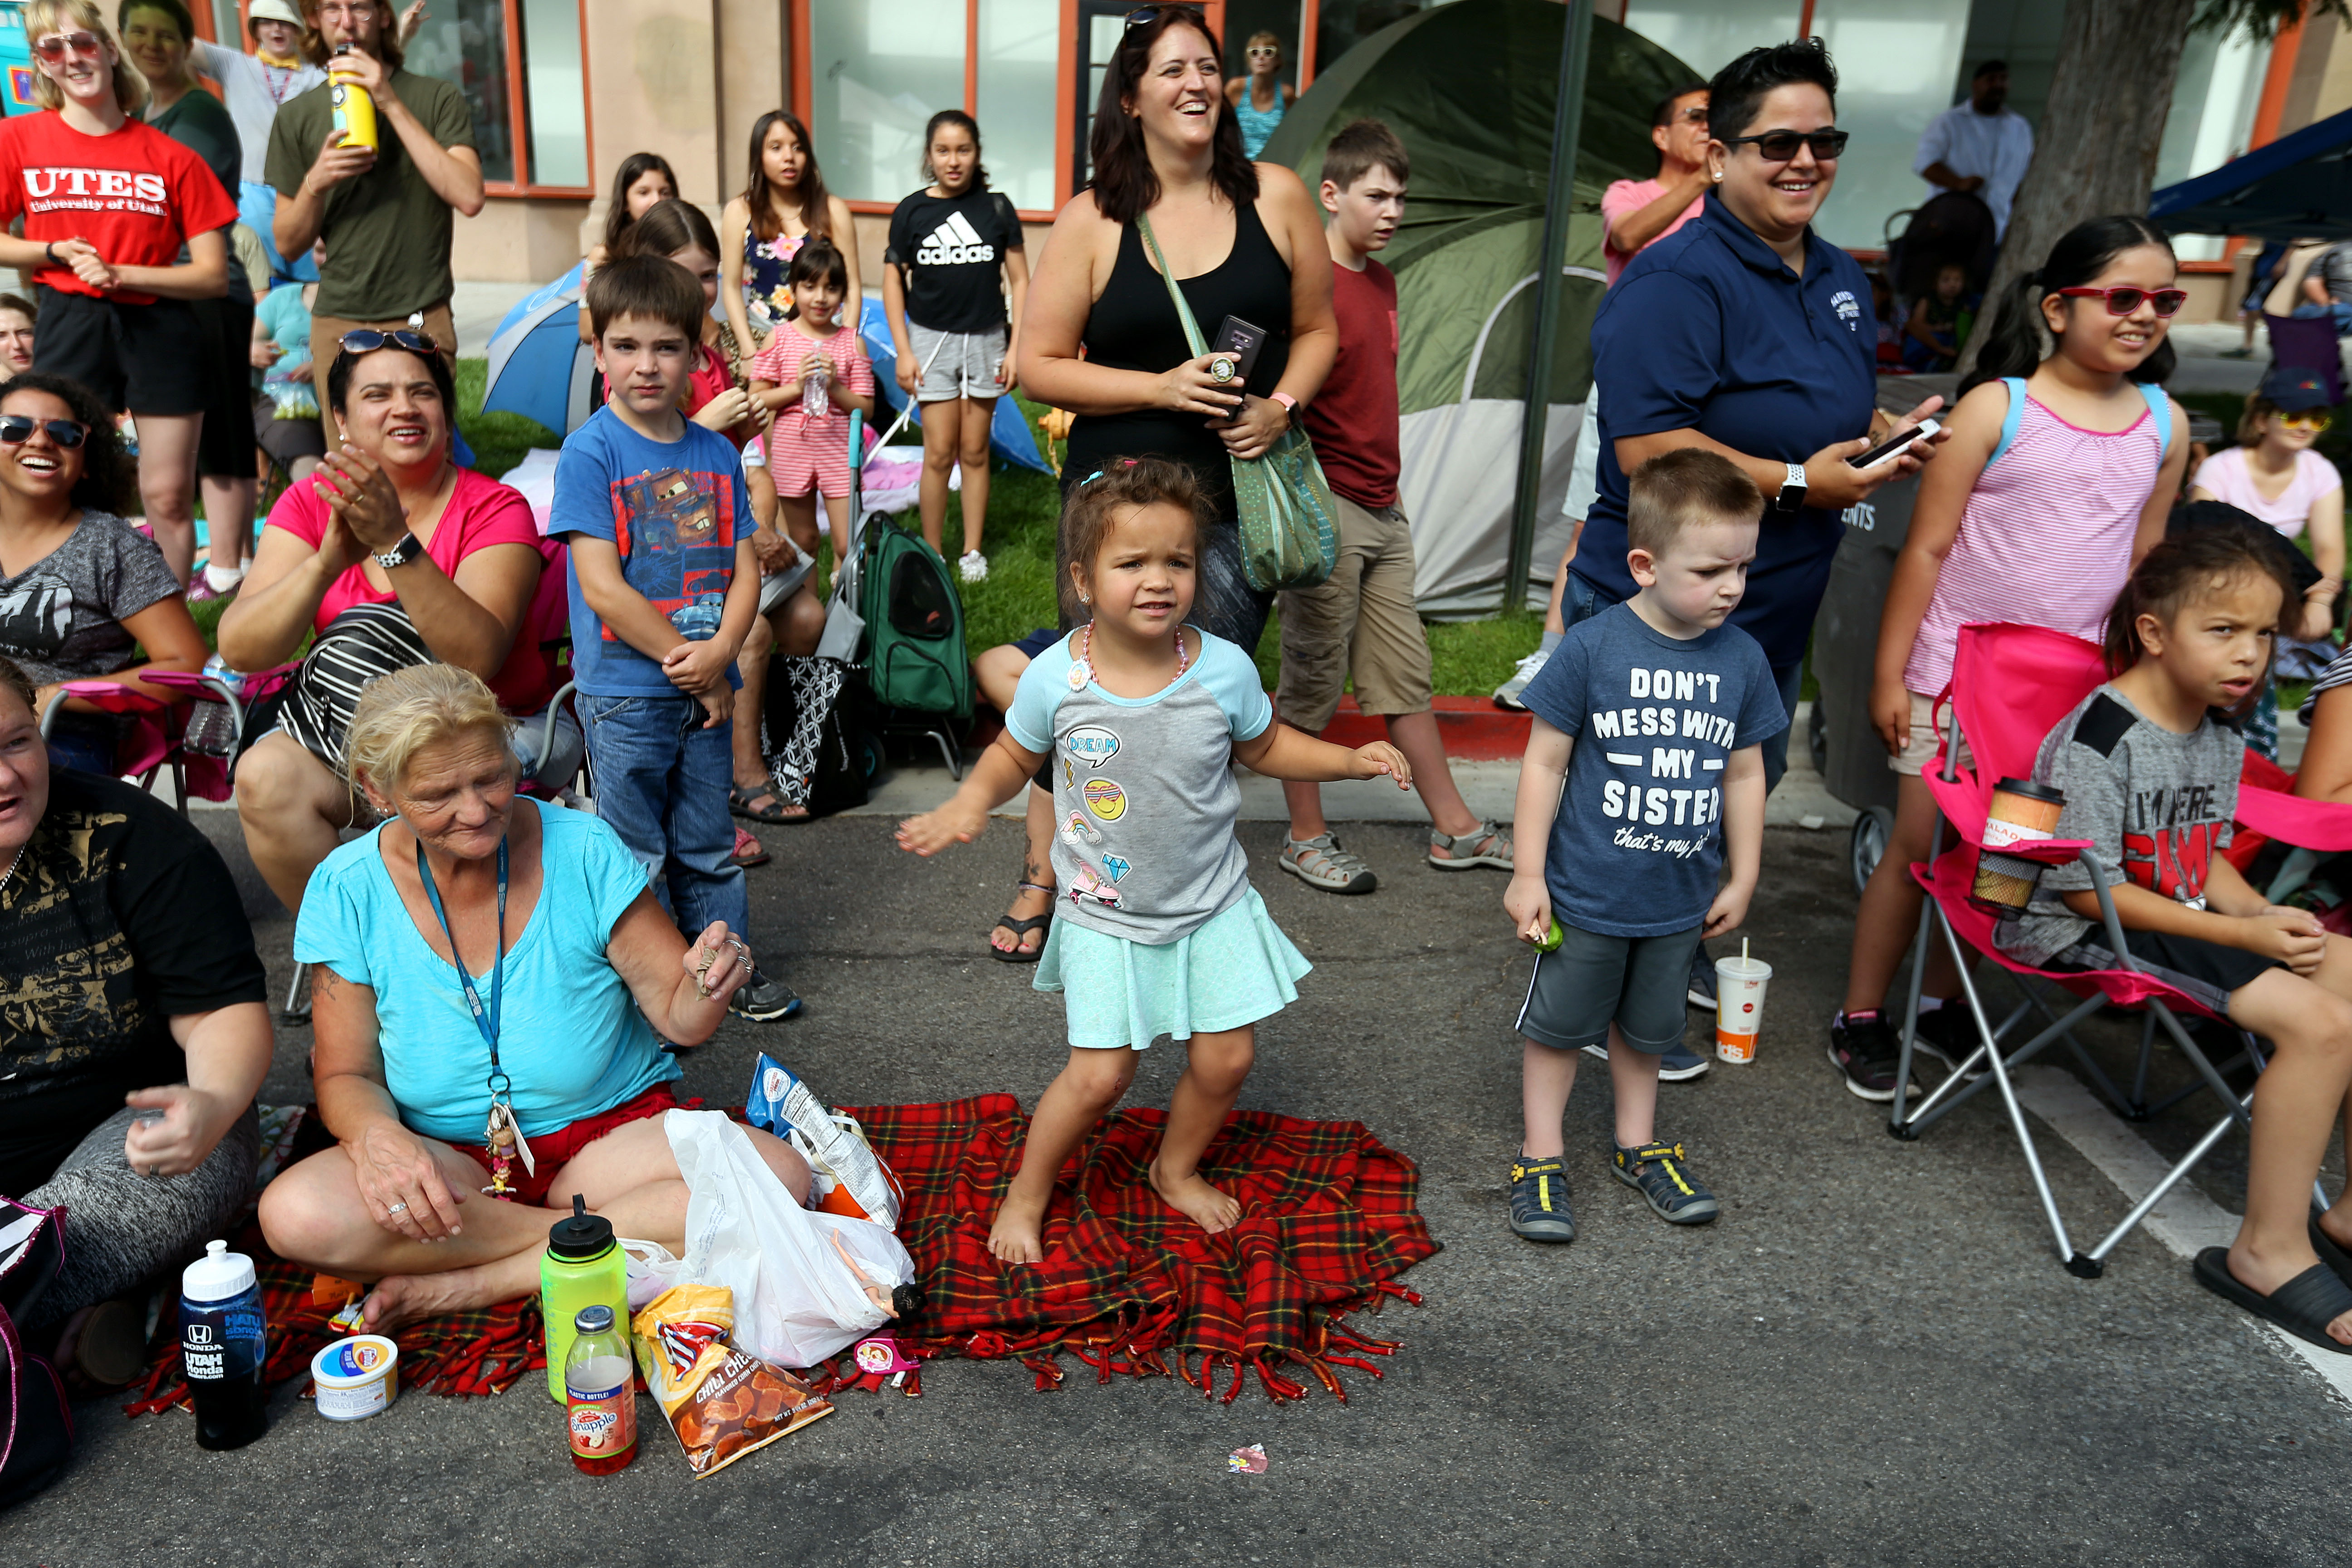 A crowd watches the Days of '47 Parade in Salt Lake City on Wednesday, July 24, 2019.